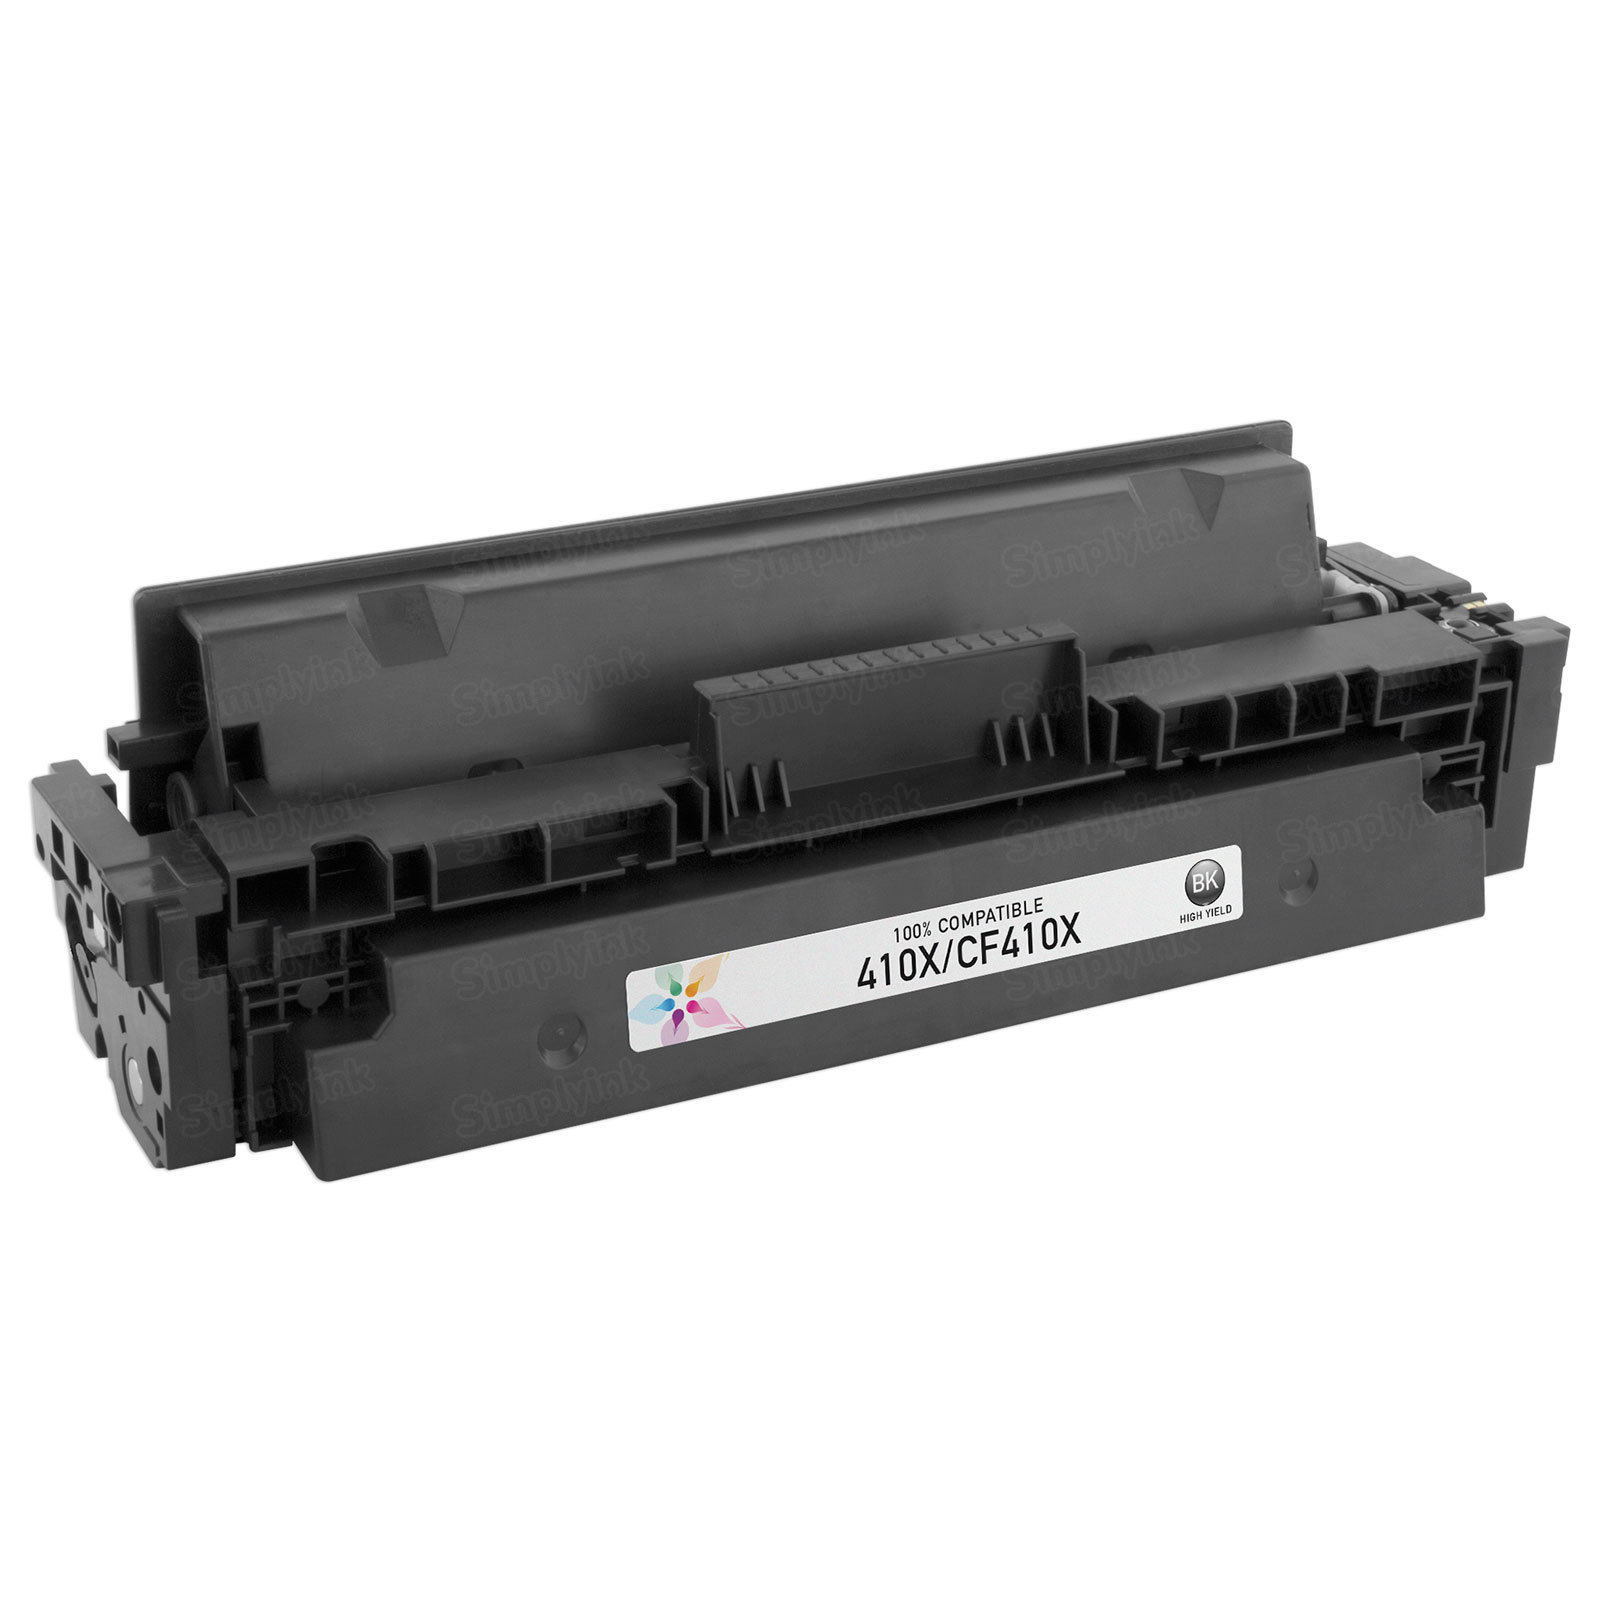 Replacement HY Black Toner for HP 410X